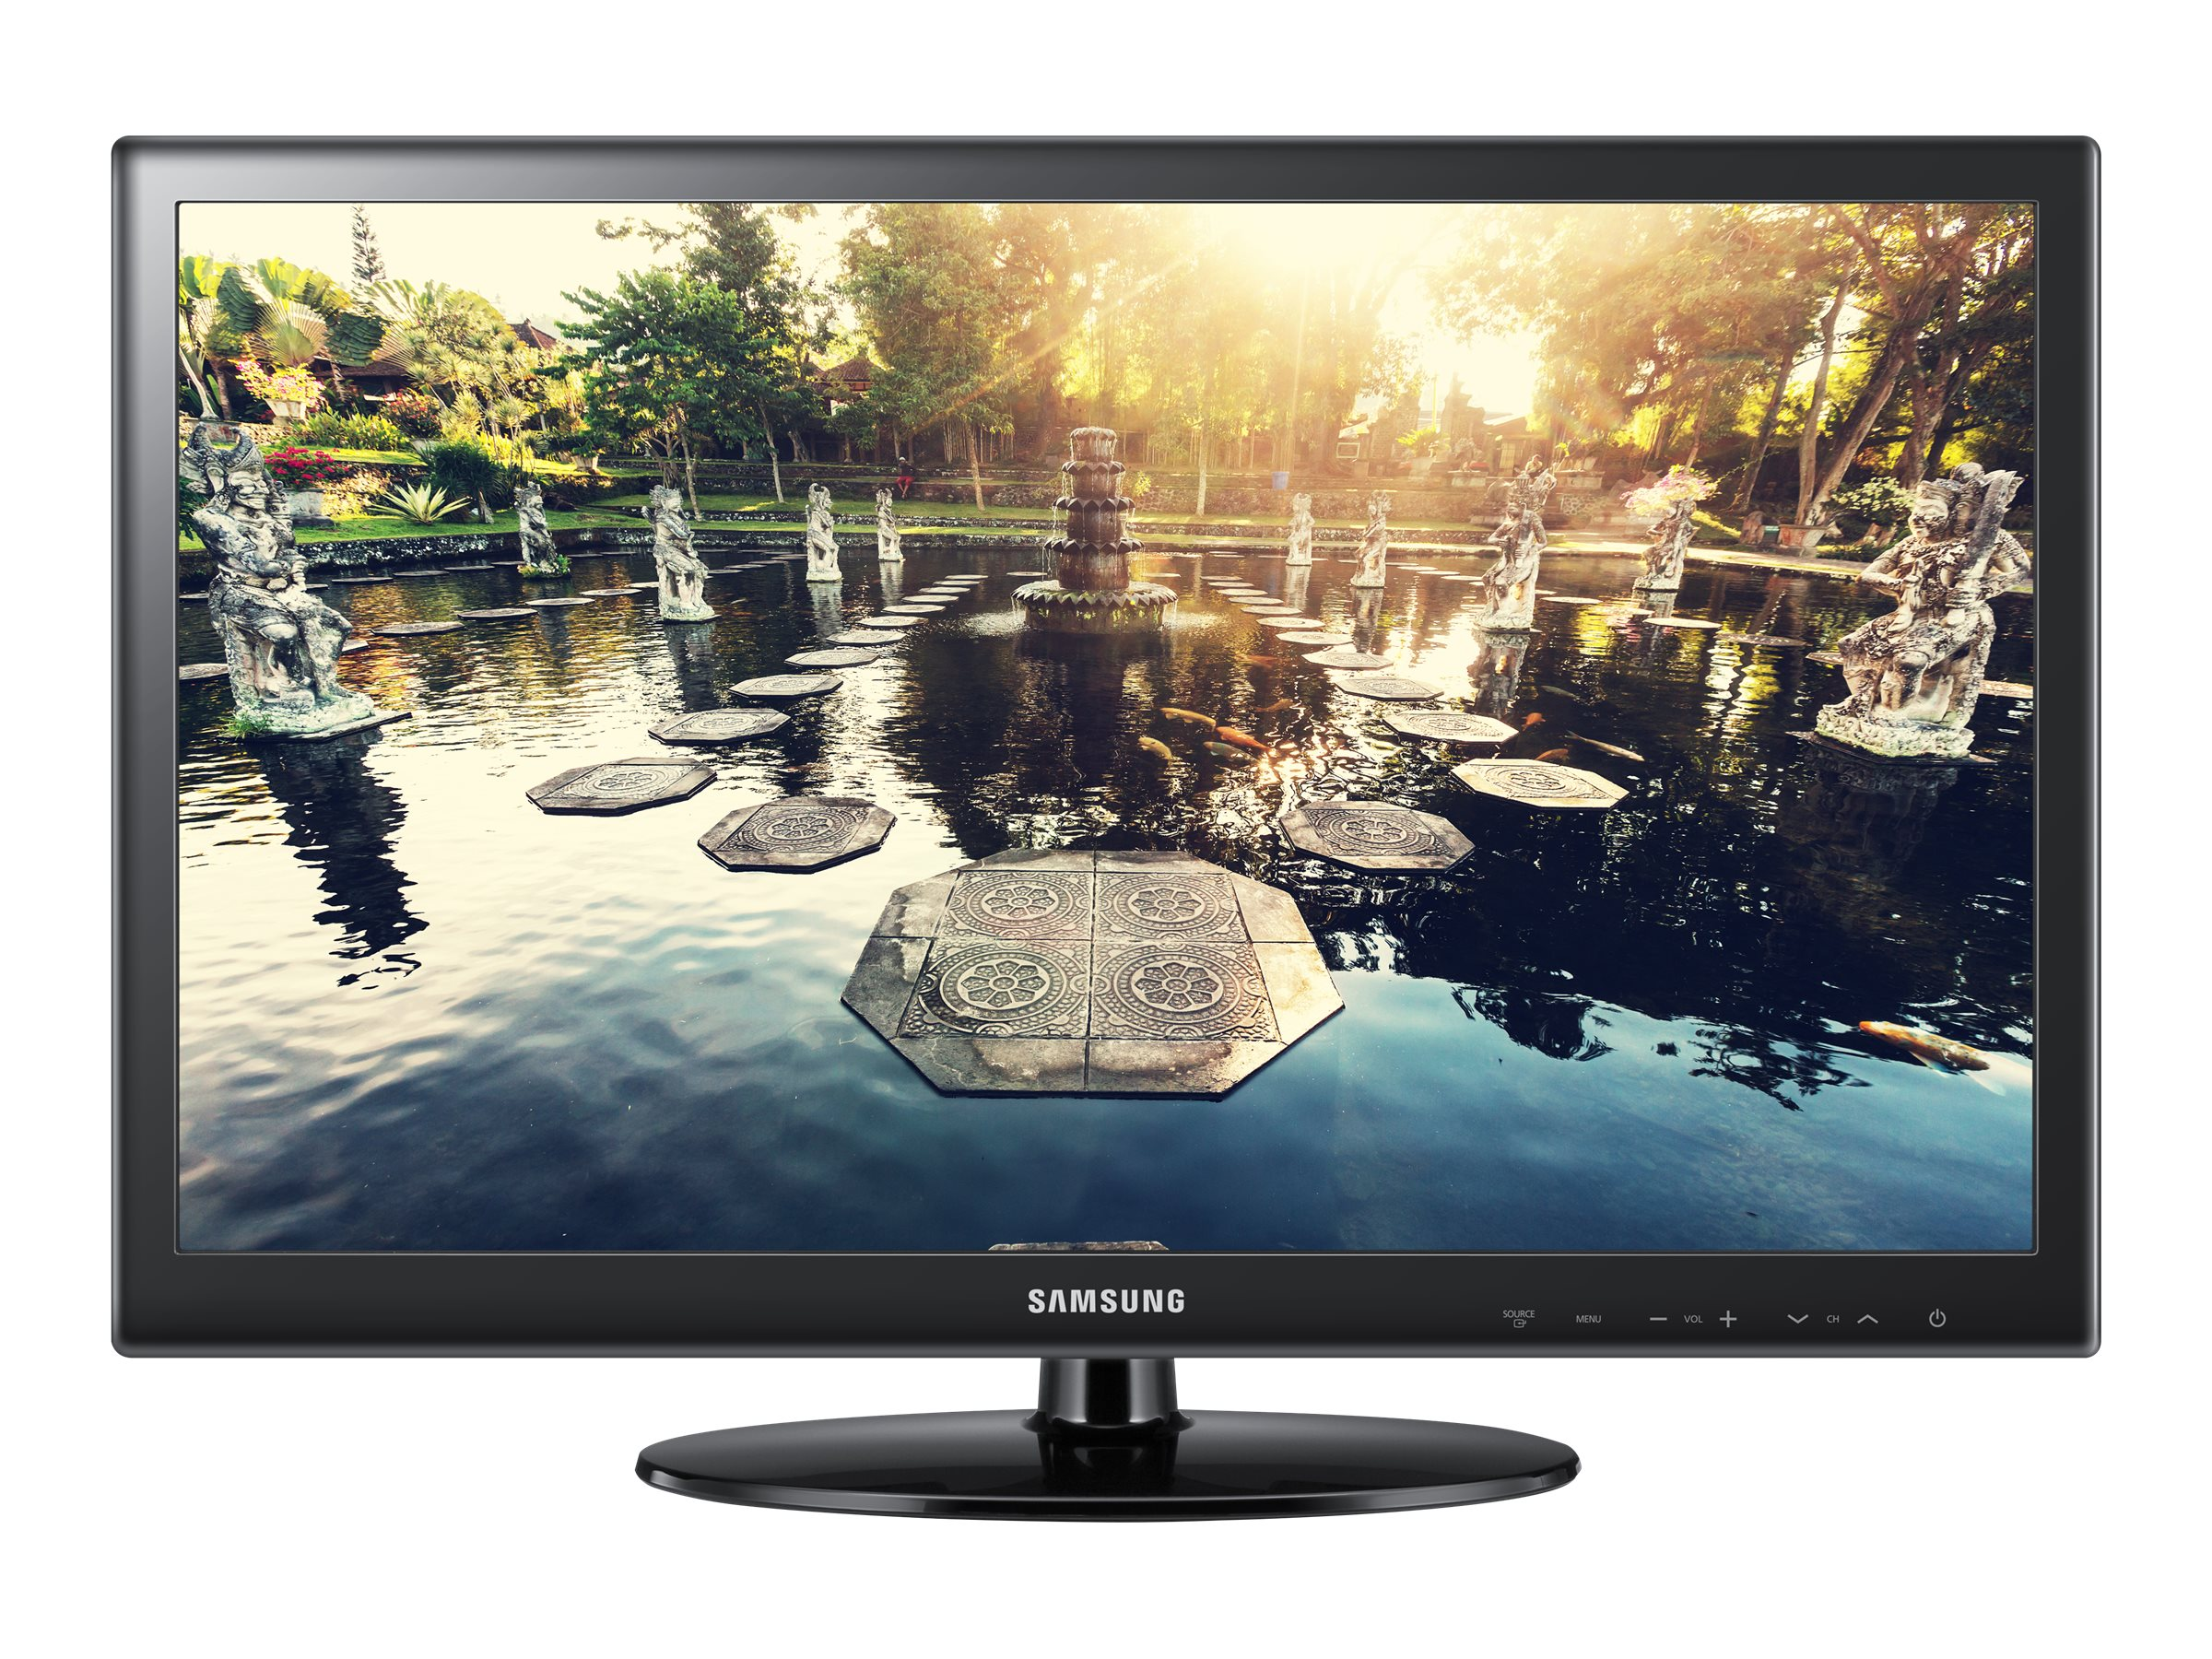 Samsung 22 HE690 Full HD LED-LCD Hospitality TV, Black